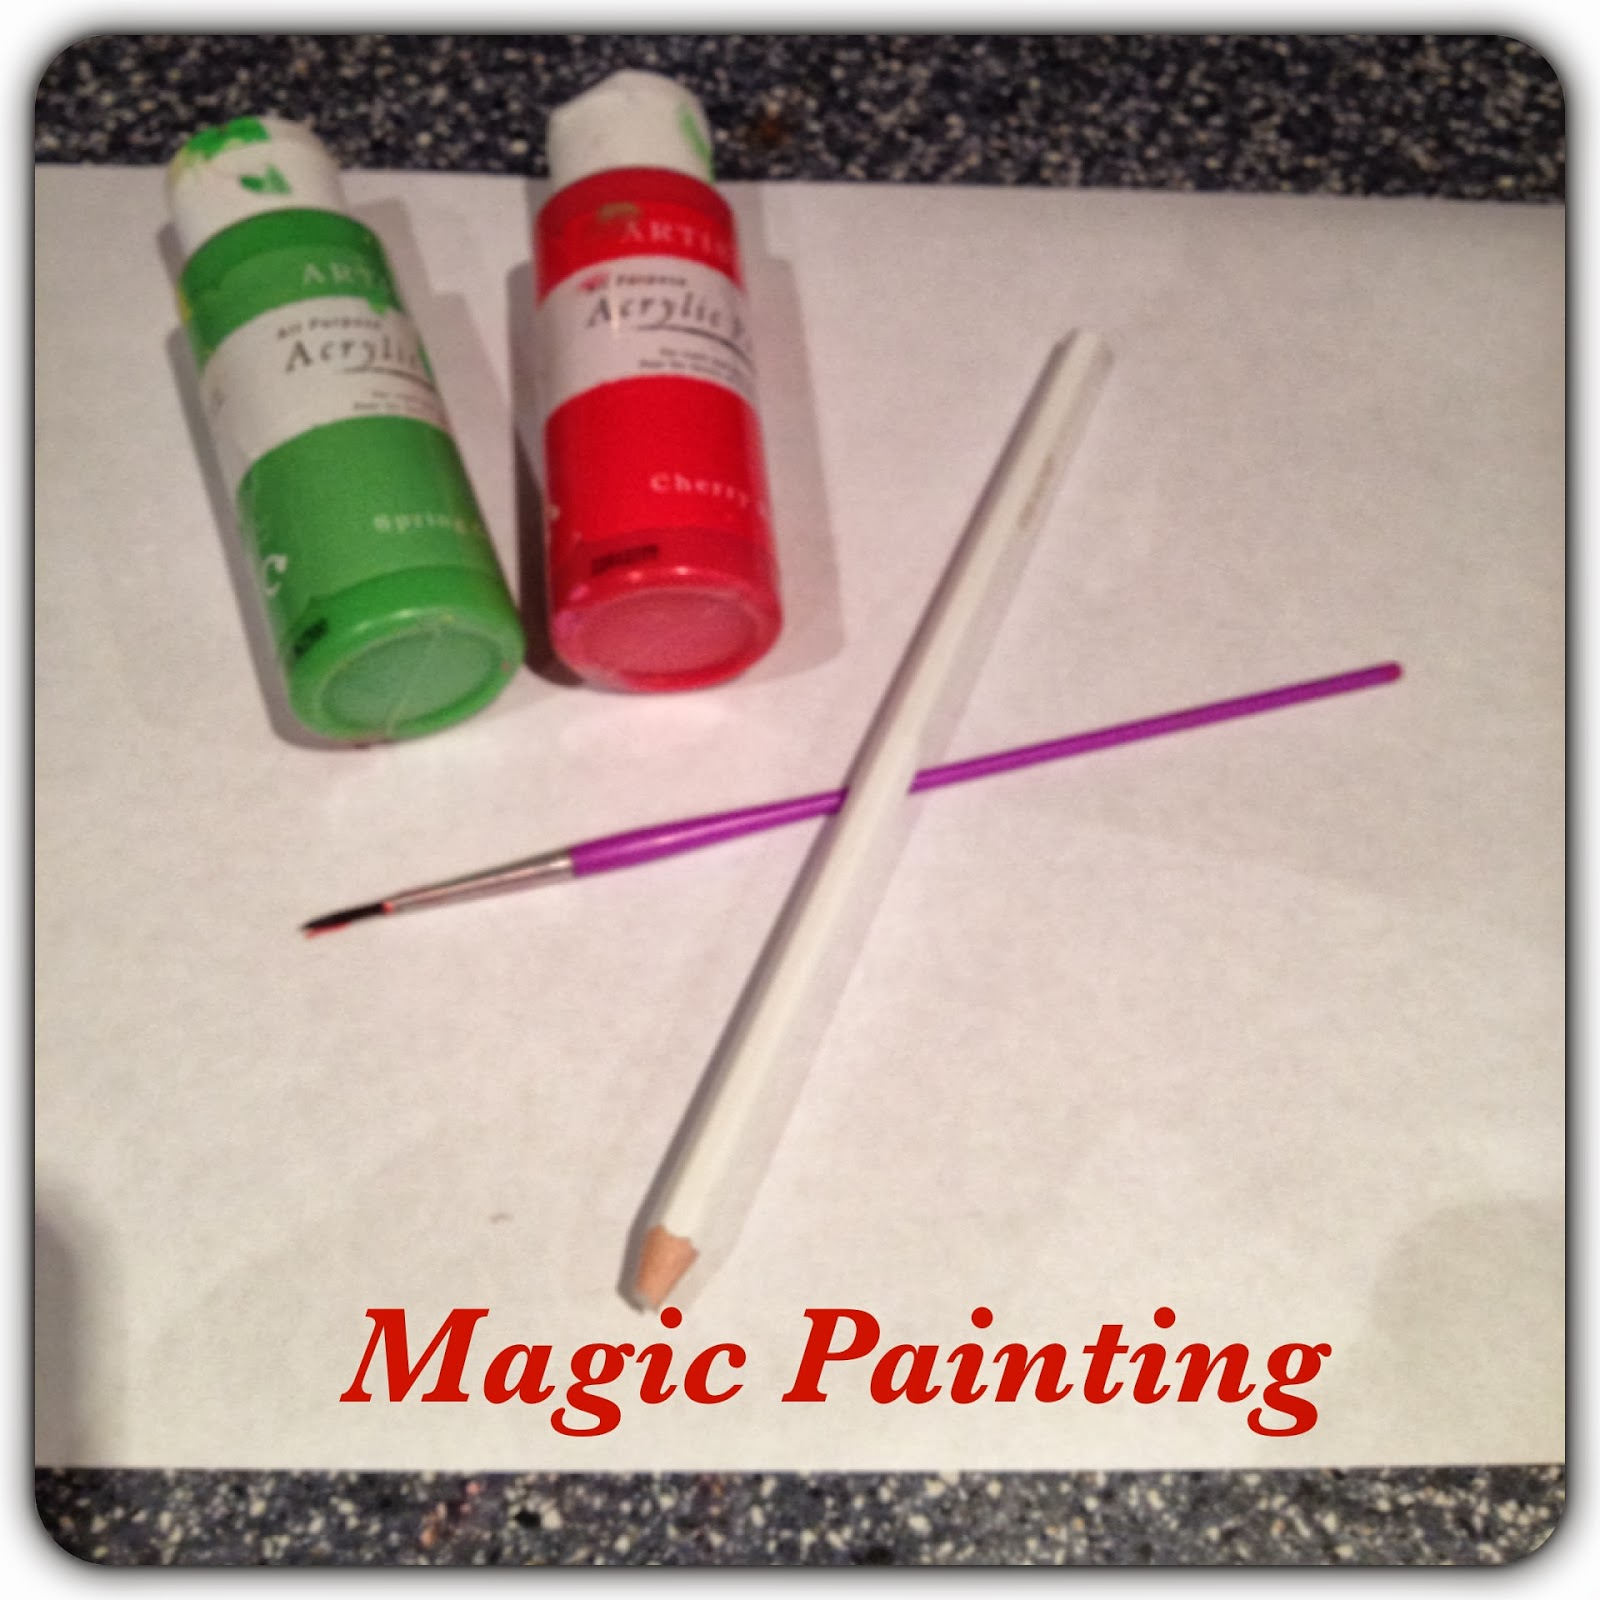 magic painting materials